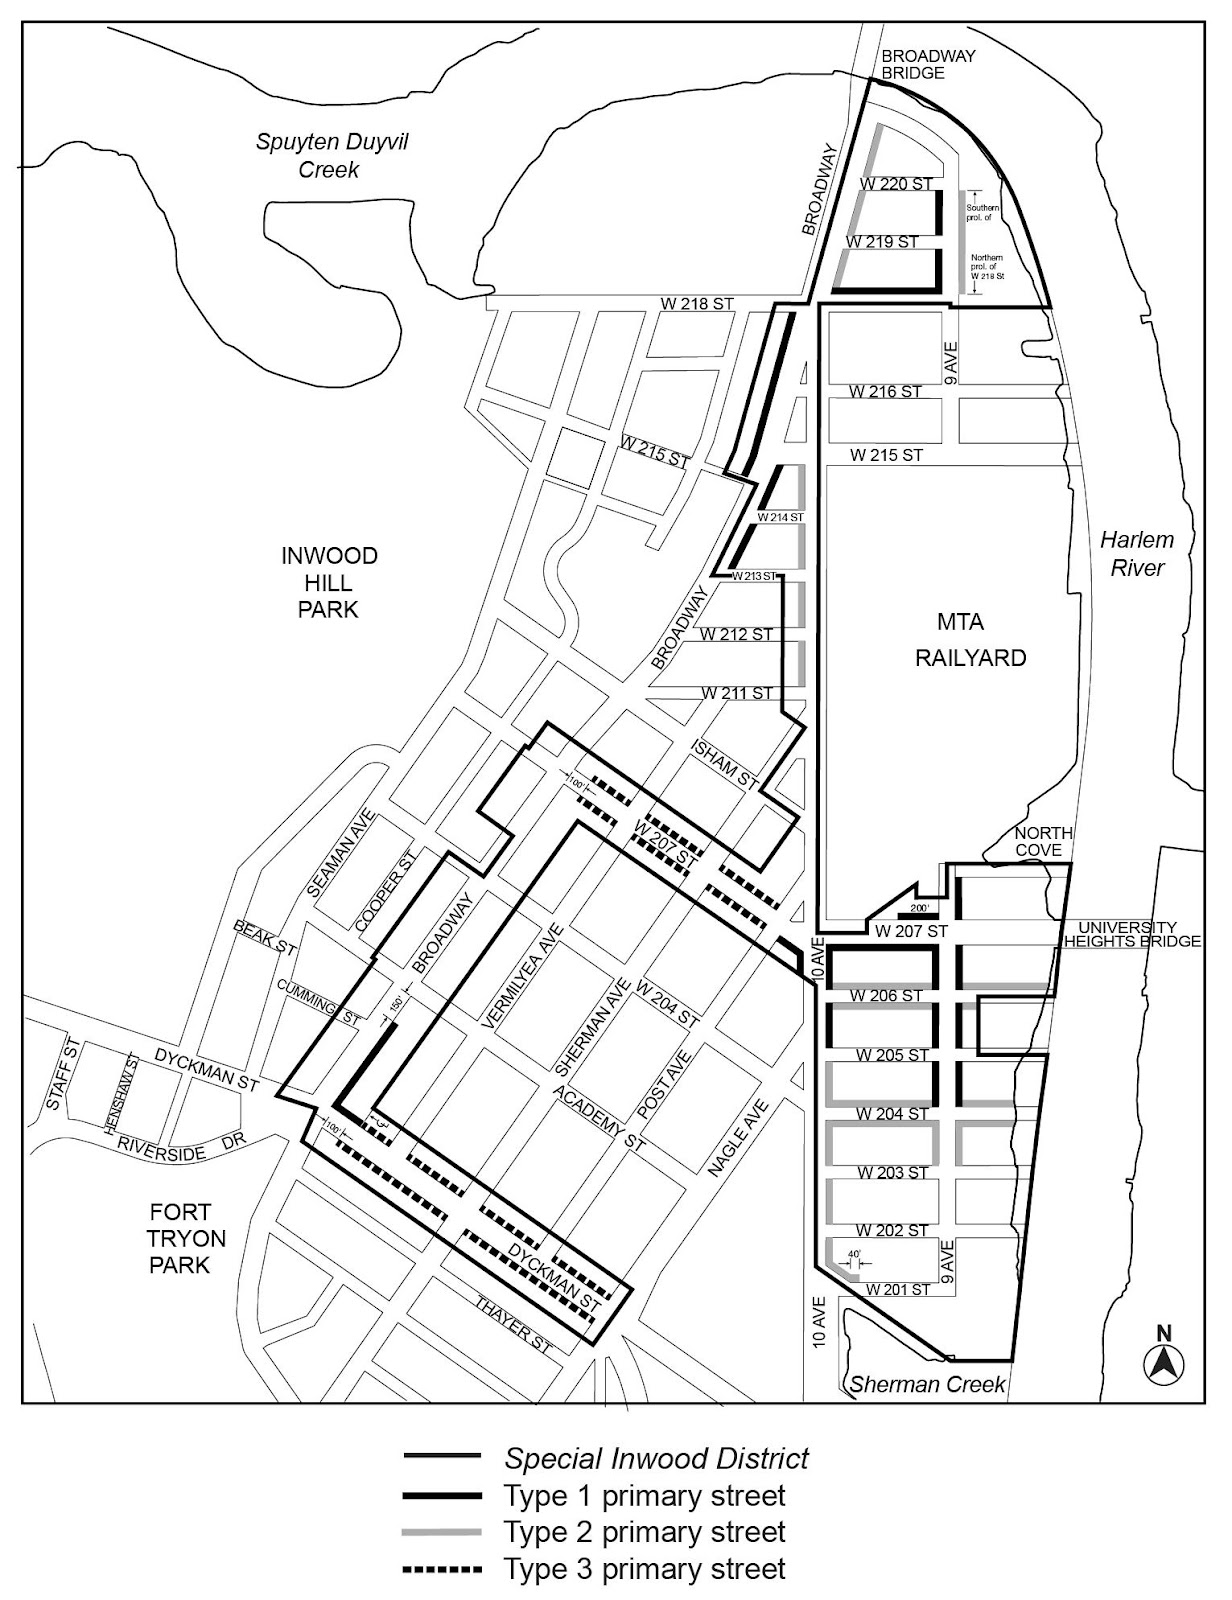 Zoning Resolutions Chapter 2: Special Inwood District APPENDIX.1